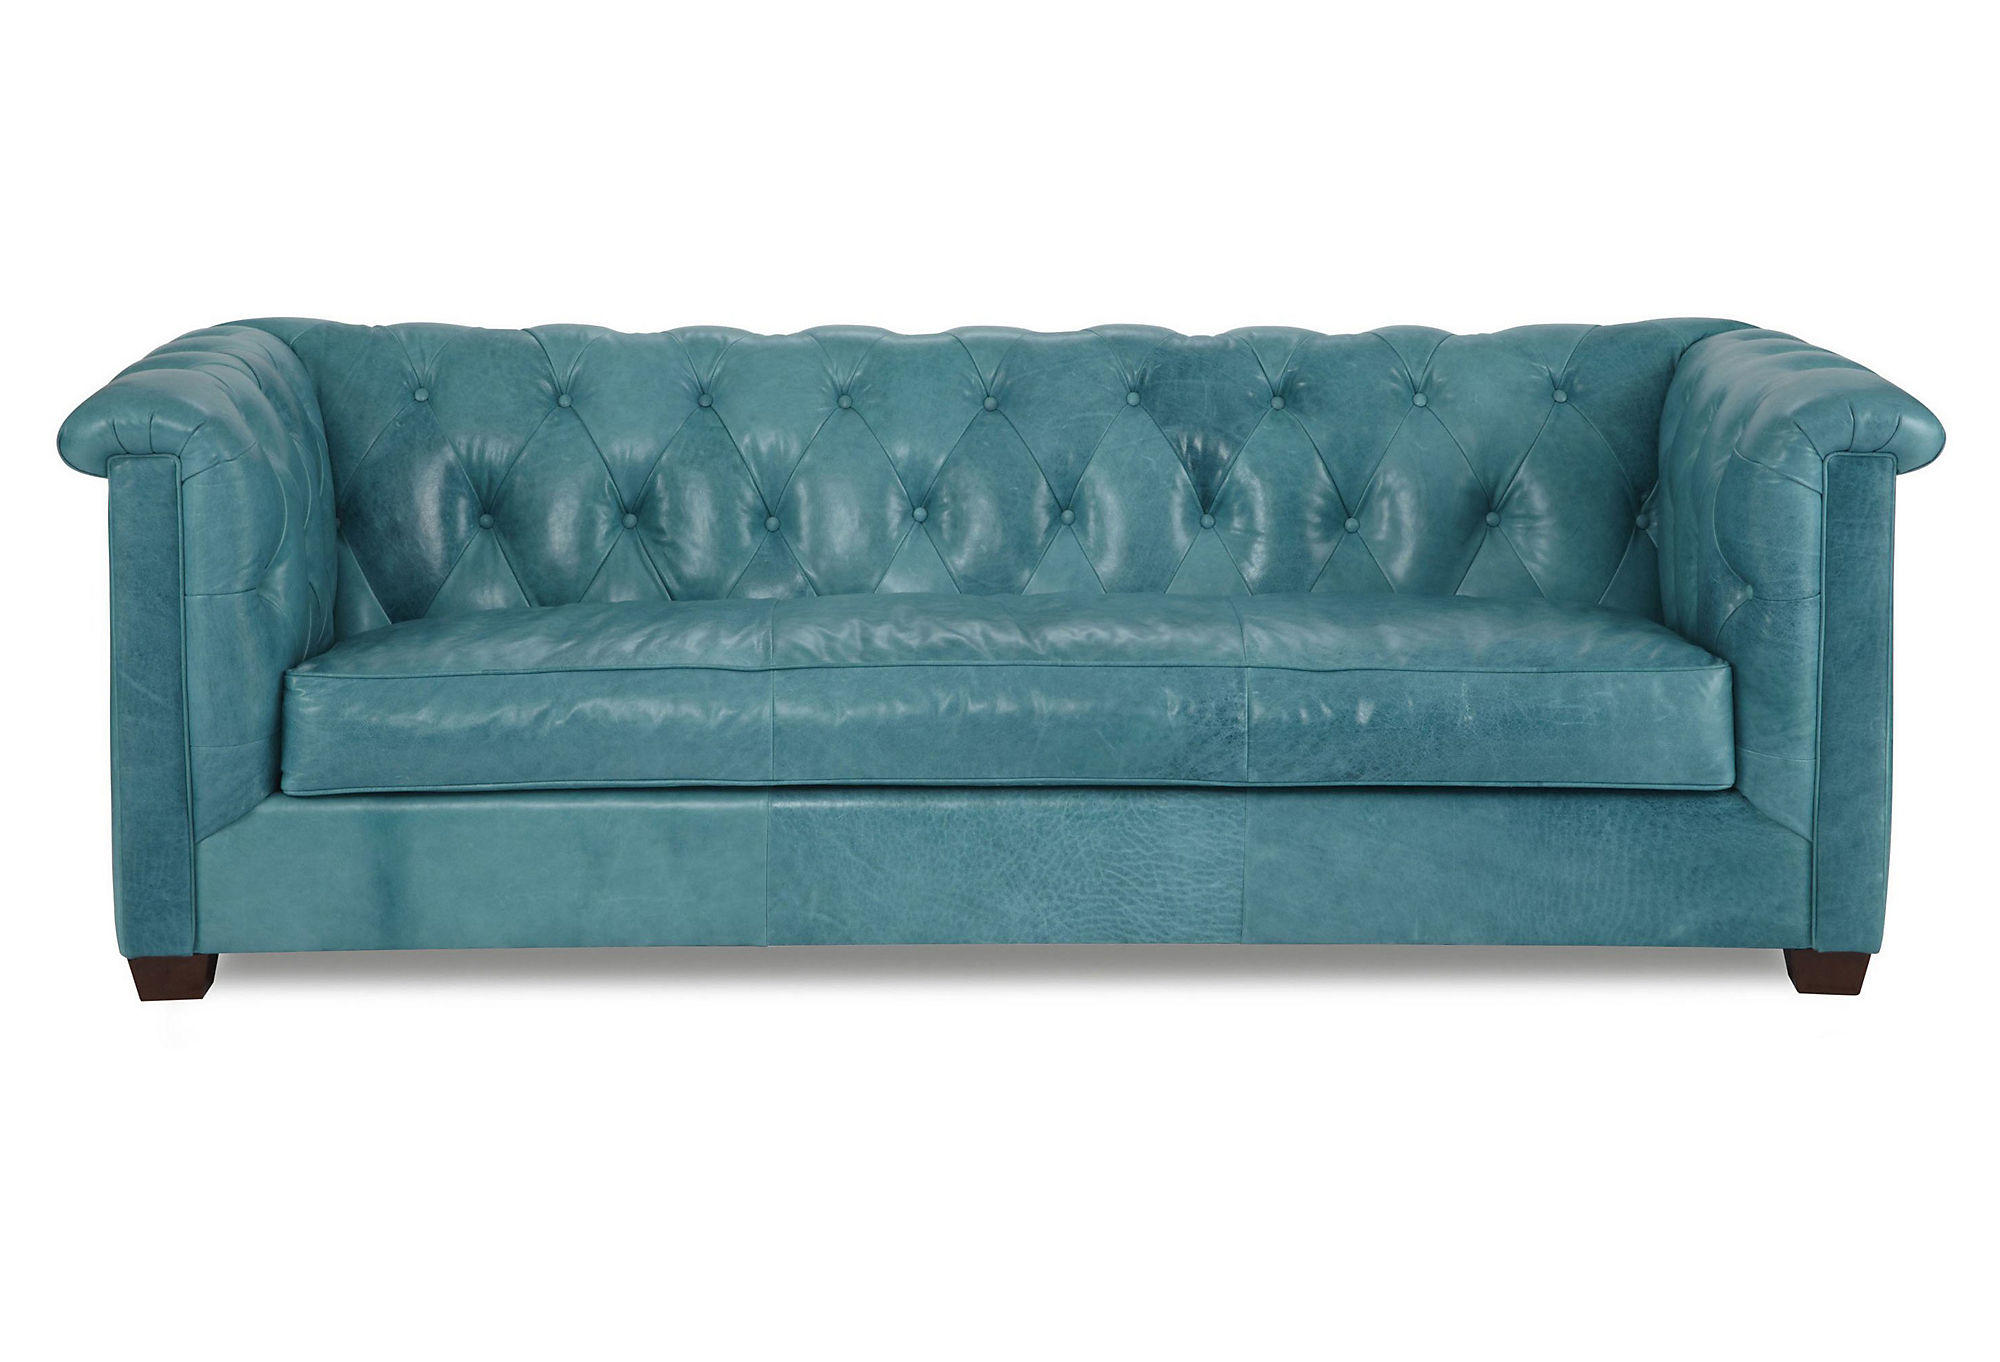 tufted turquoise sofa leather sectional alexa from one kings lane